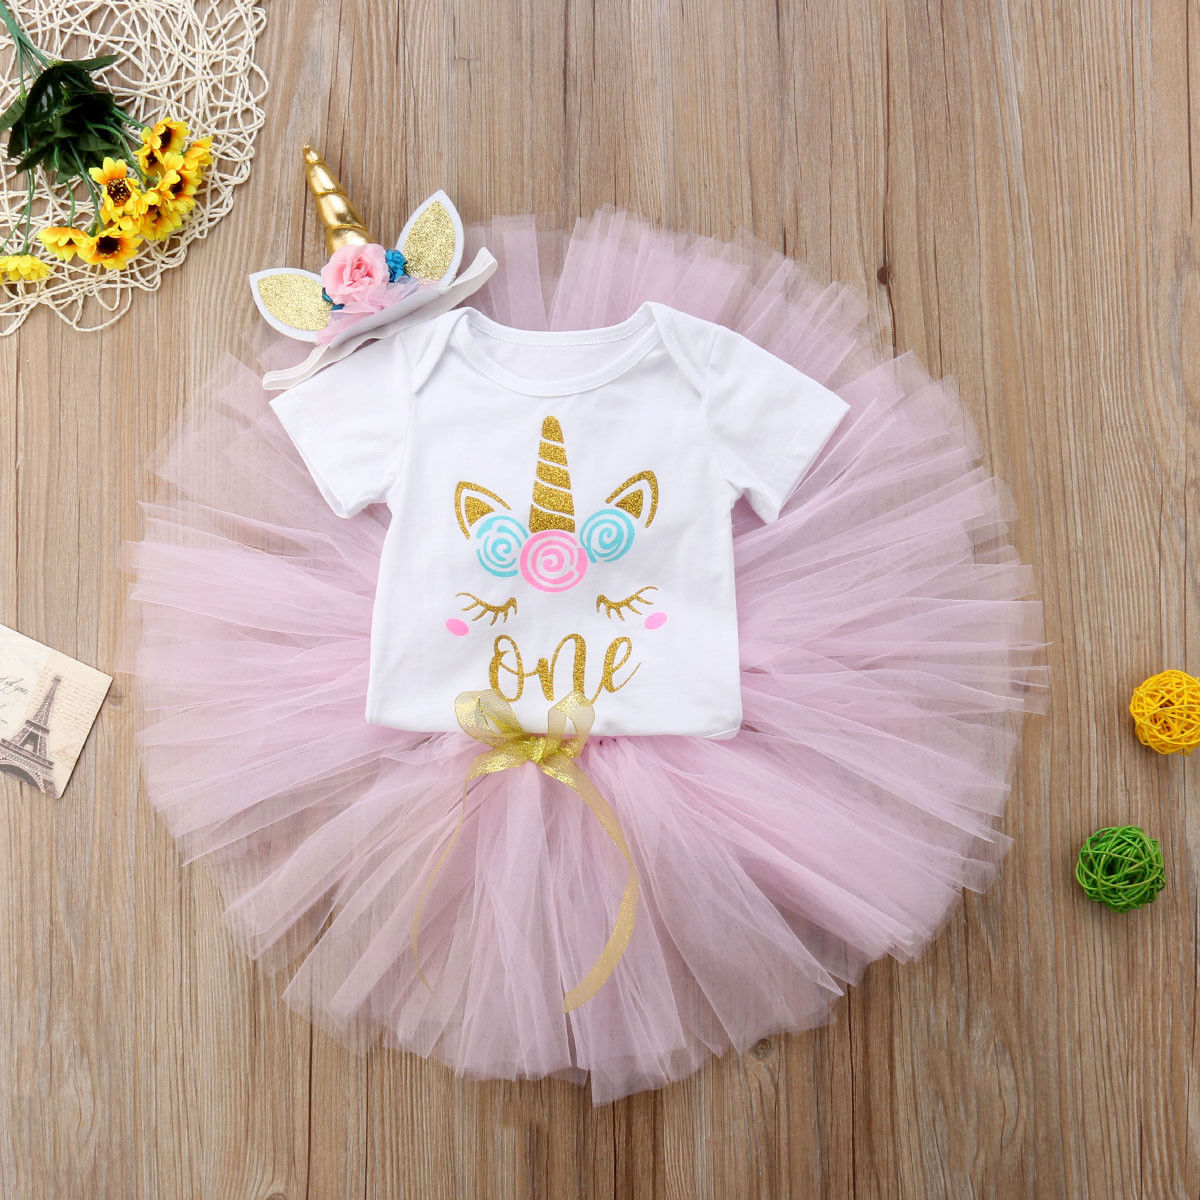 Bodysuits & One-pieces Newborn Toddler Infant Baby Girl Floral Bodysuit Fly Sleeve Cotton Fancy Jumpsuit Sunsuit White Clothes Reliable Performance Bodysuits